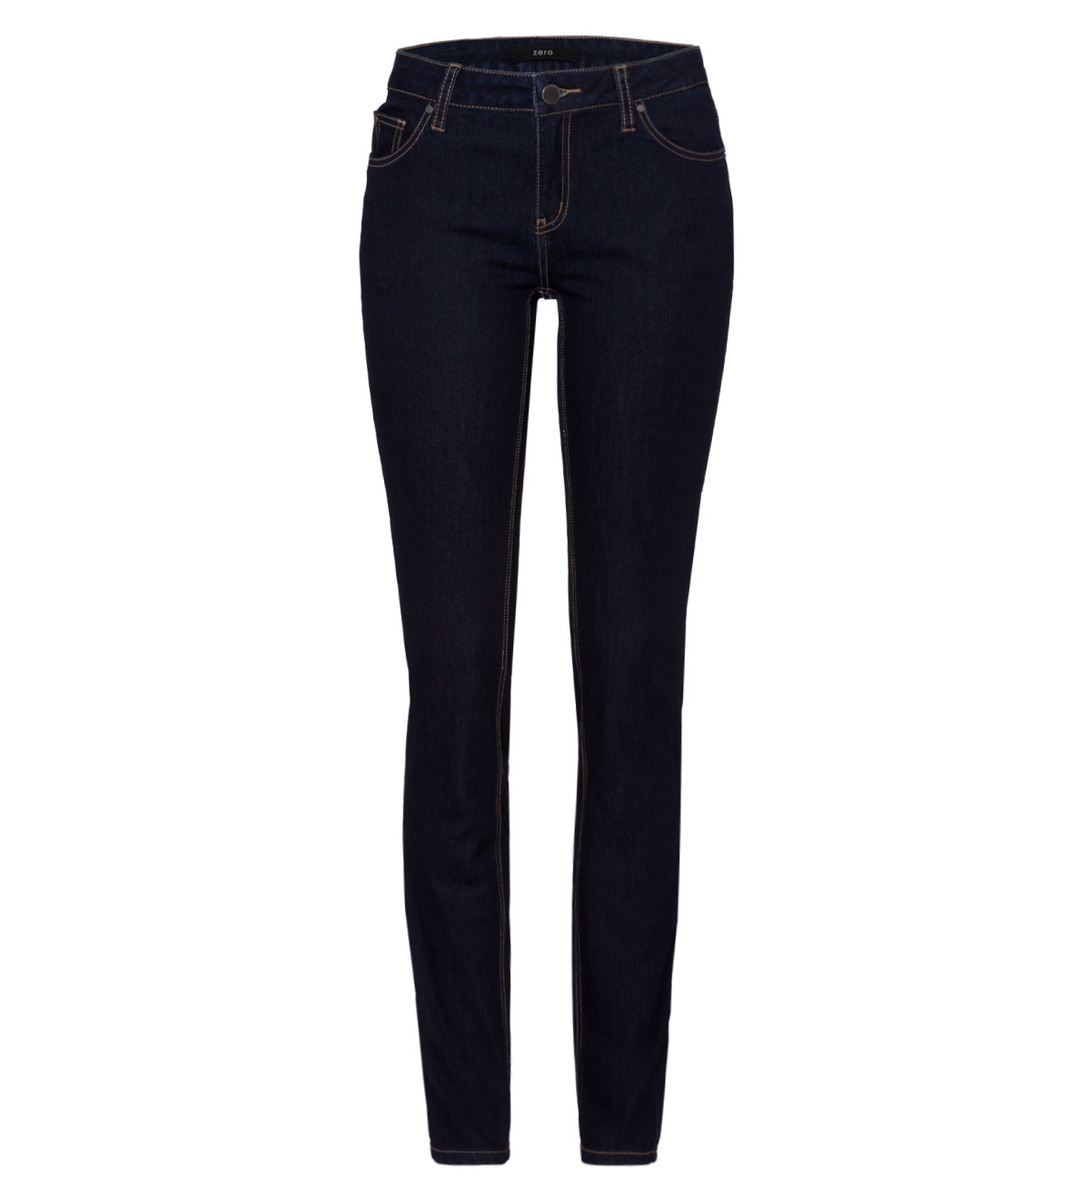 Jeans skinny fit 34 Inch in dark blue rinsed washed